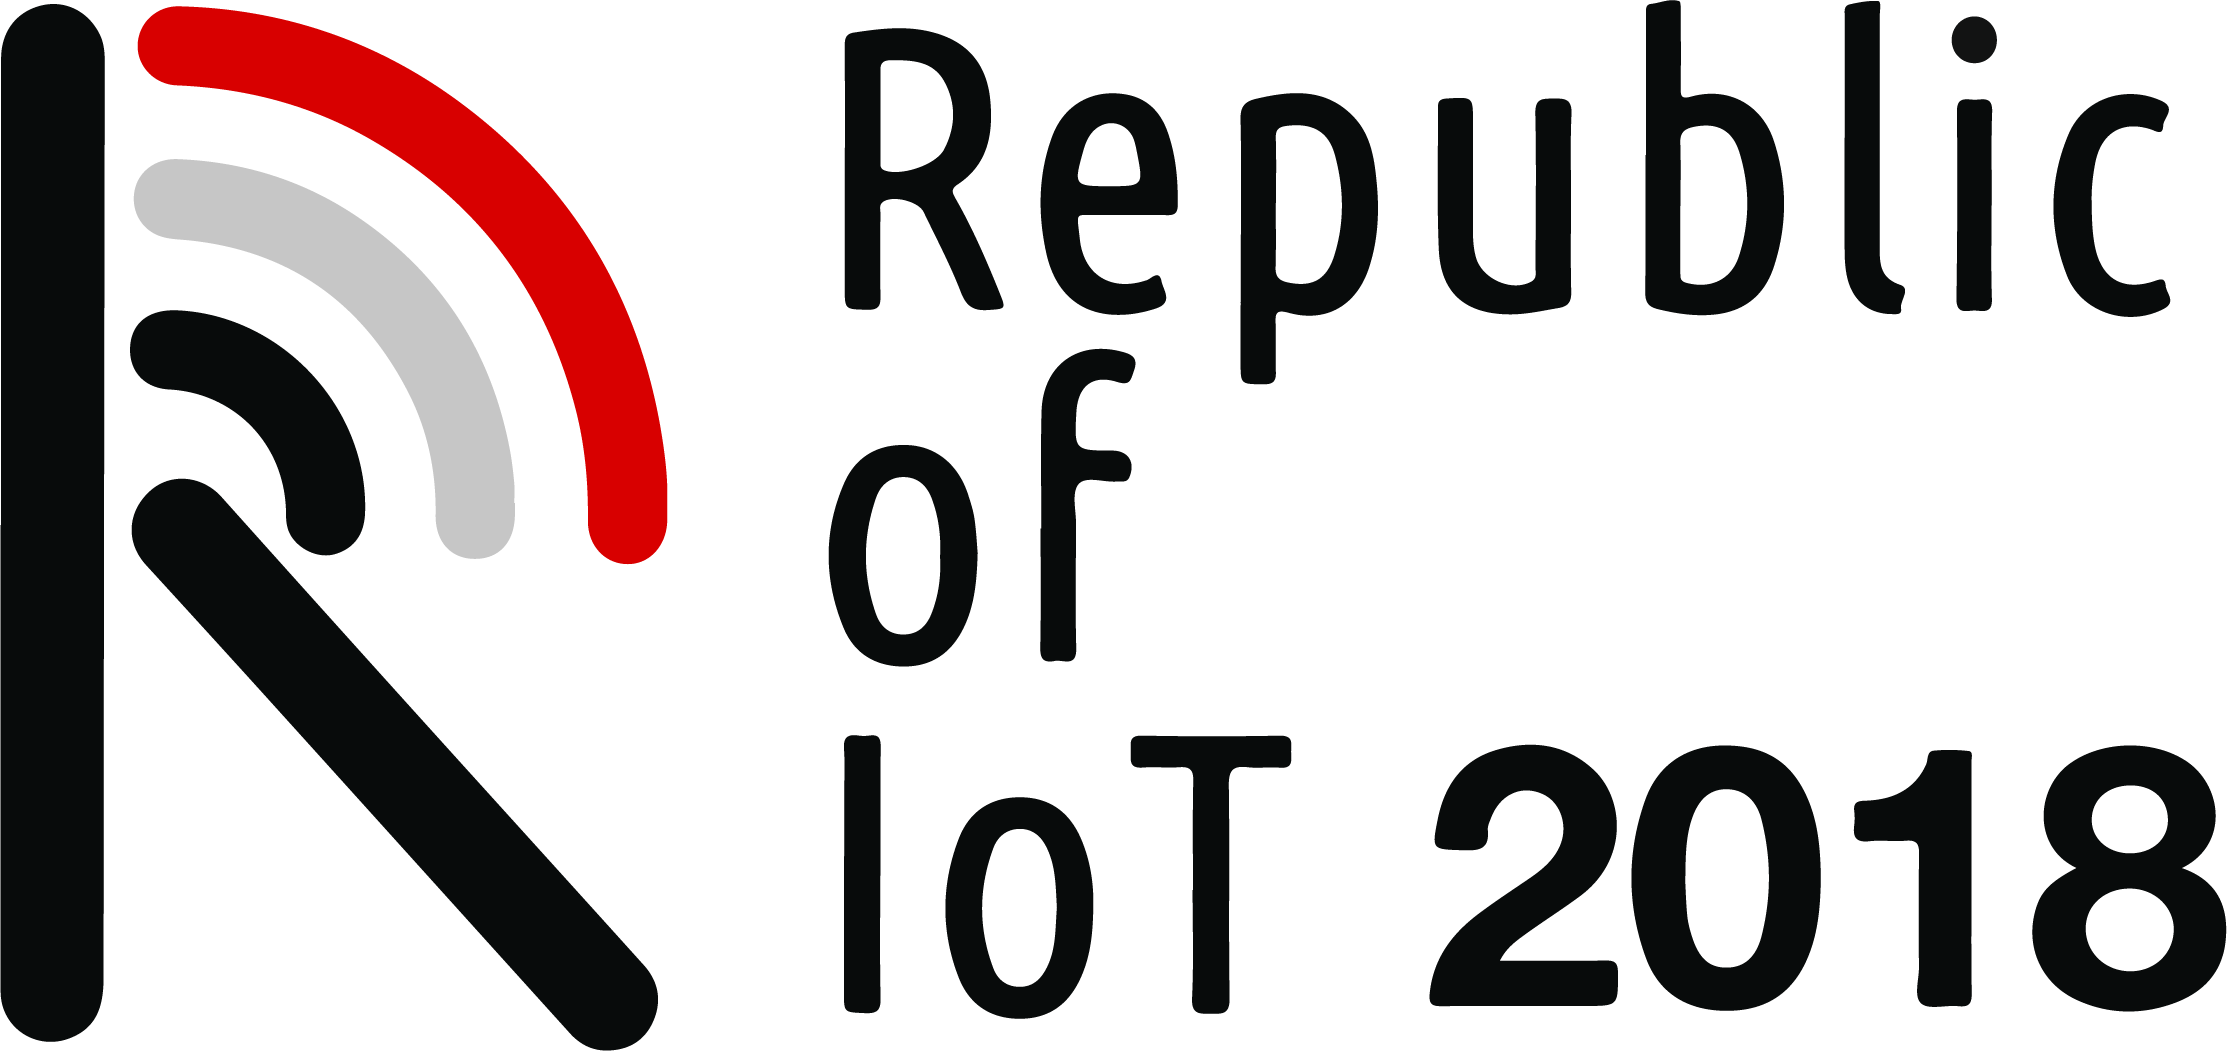 Republic of IoT